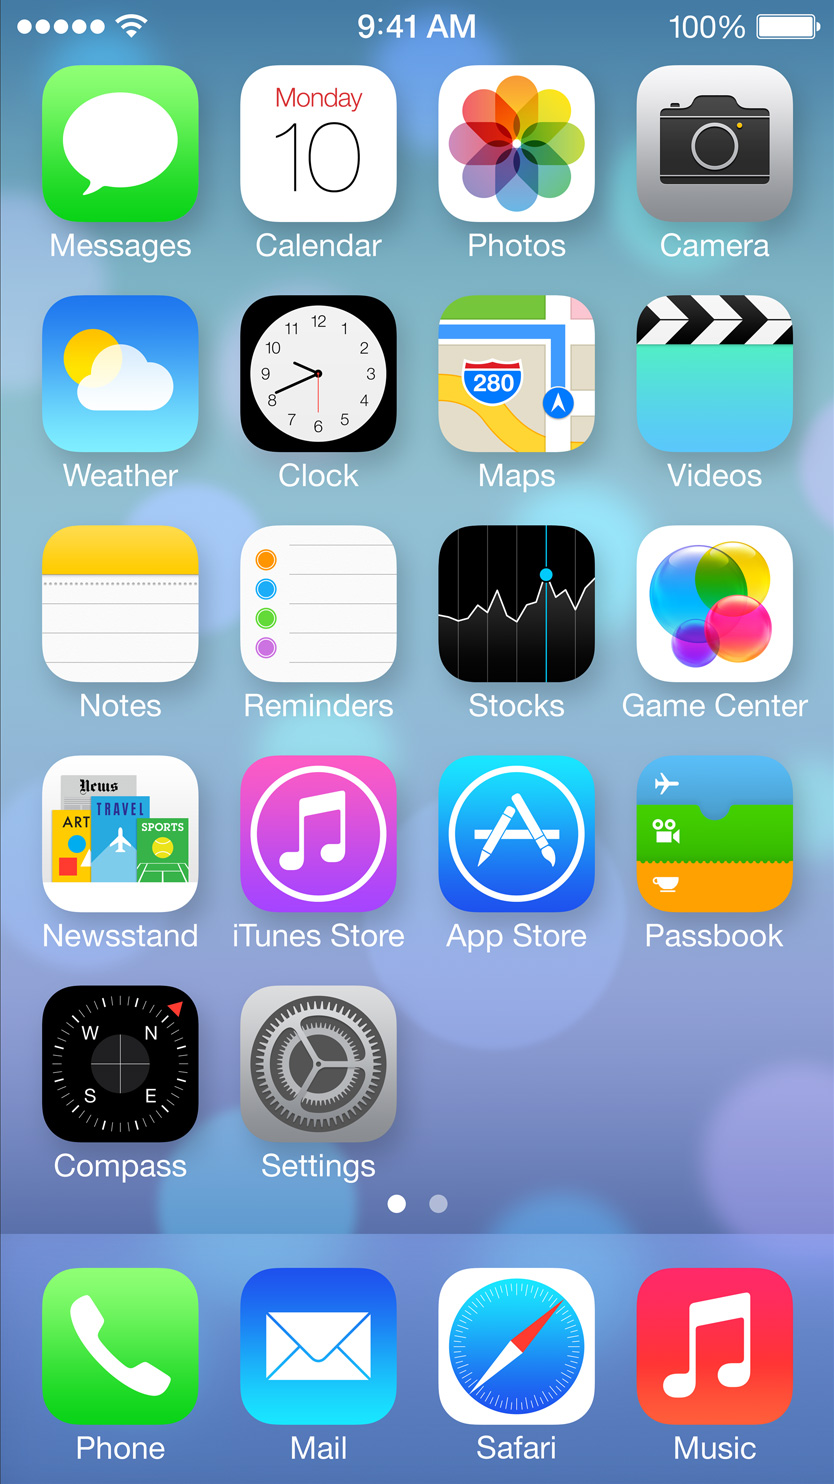 iOS 7 home screen on iPhone 5